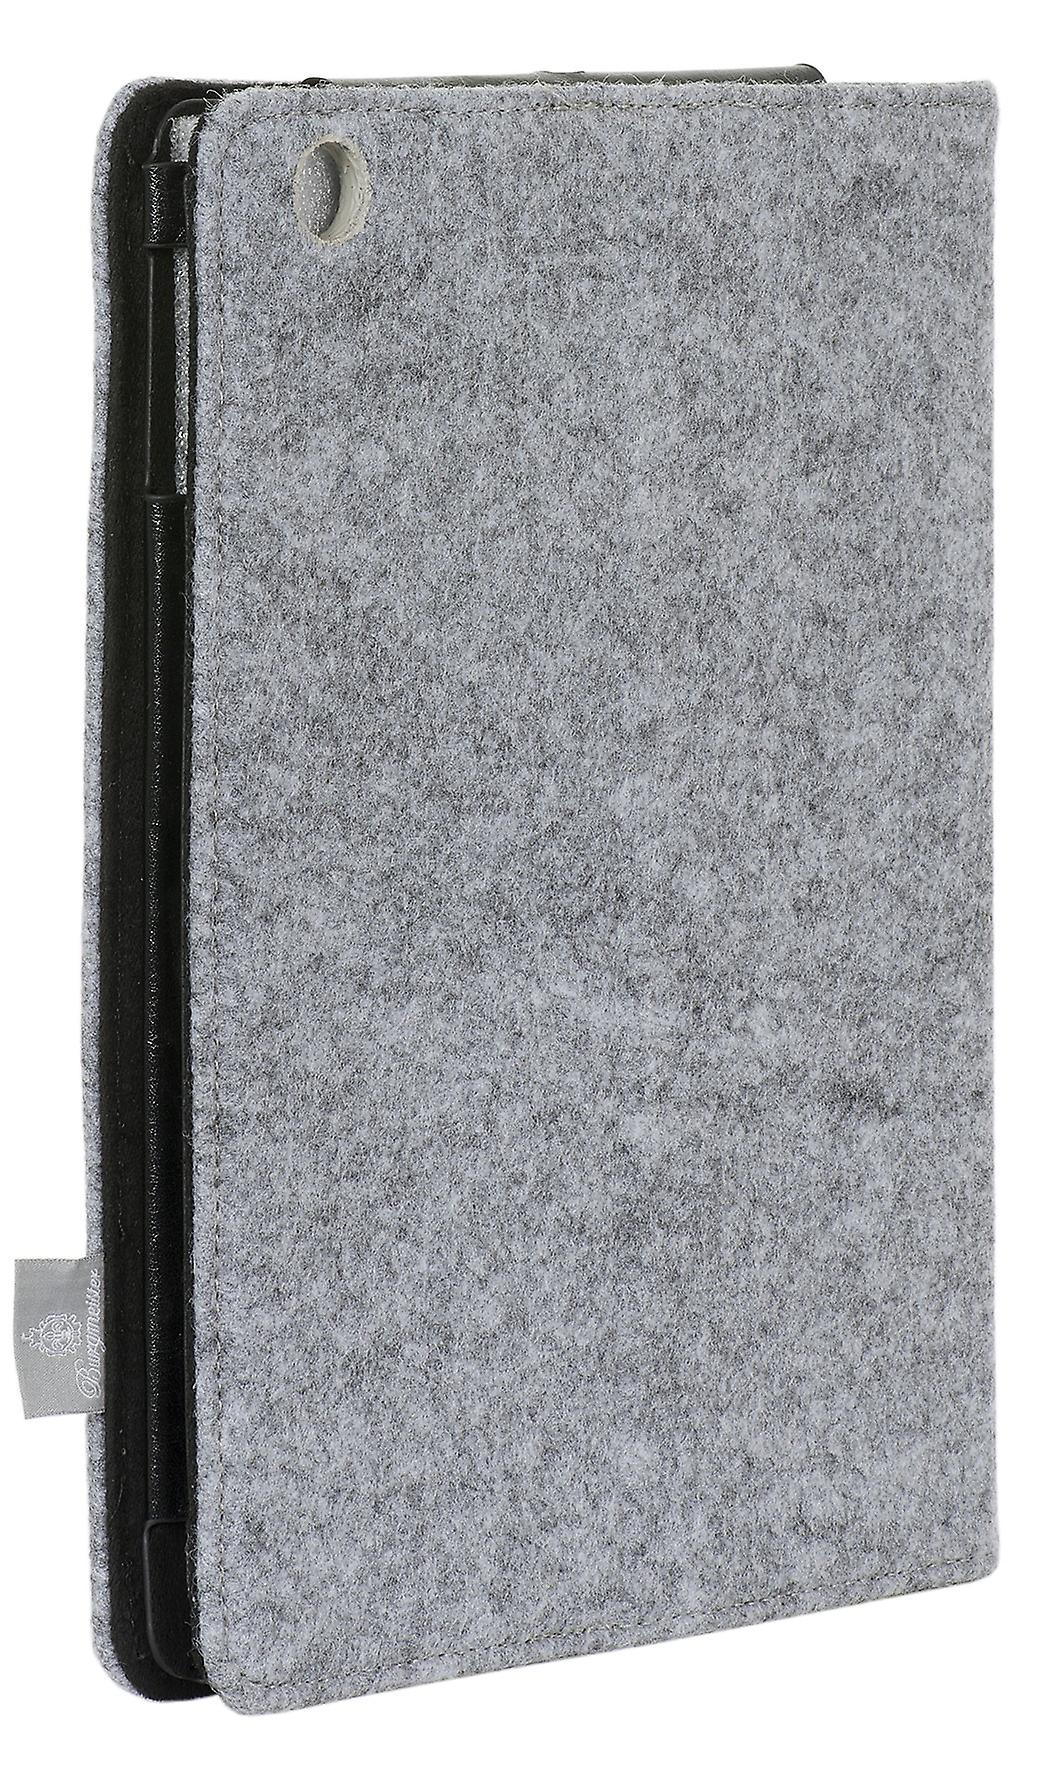 Burgmeister ladies/gents Ipad-/Tablet PC cover felt, HBM3011-168